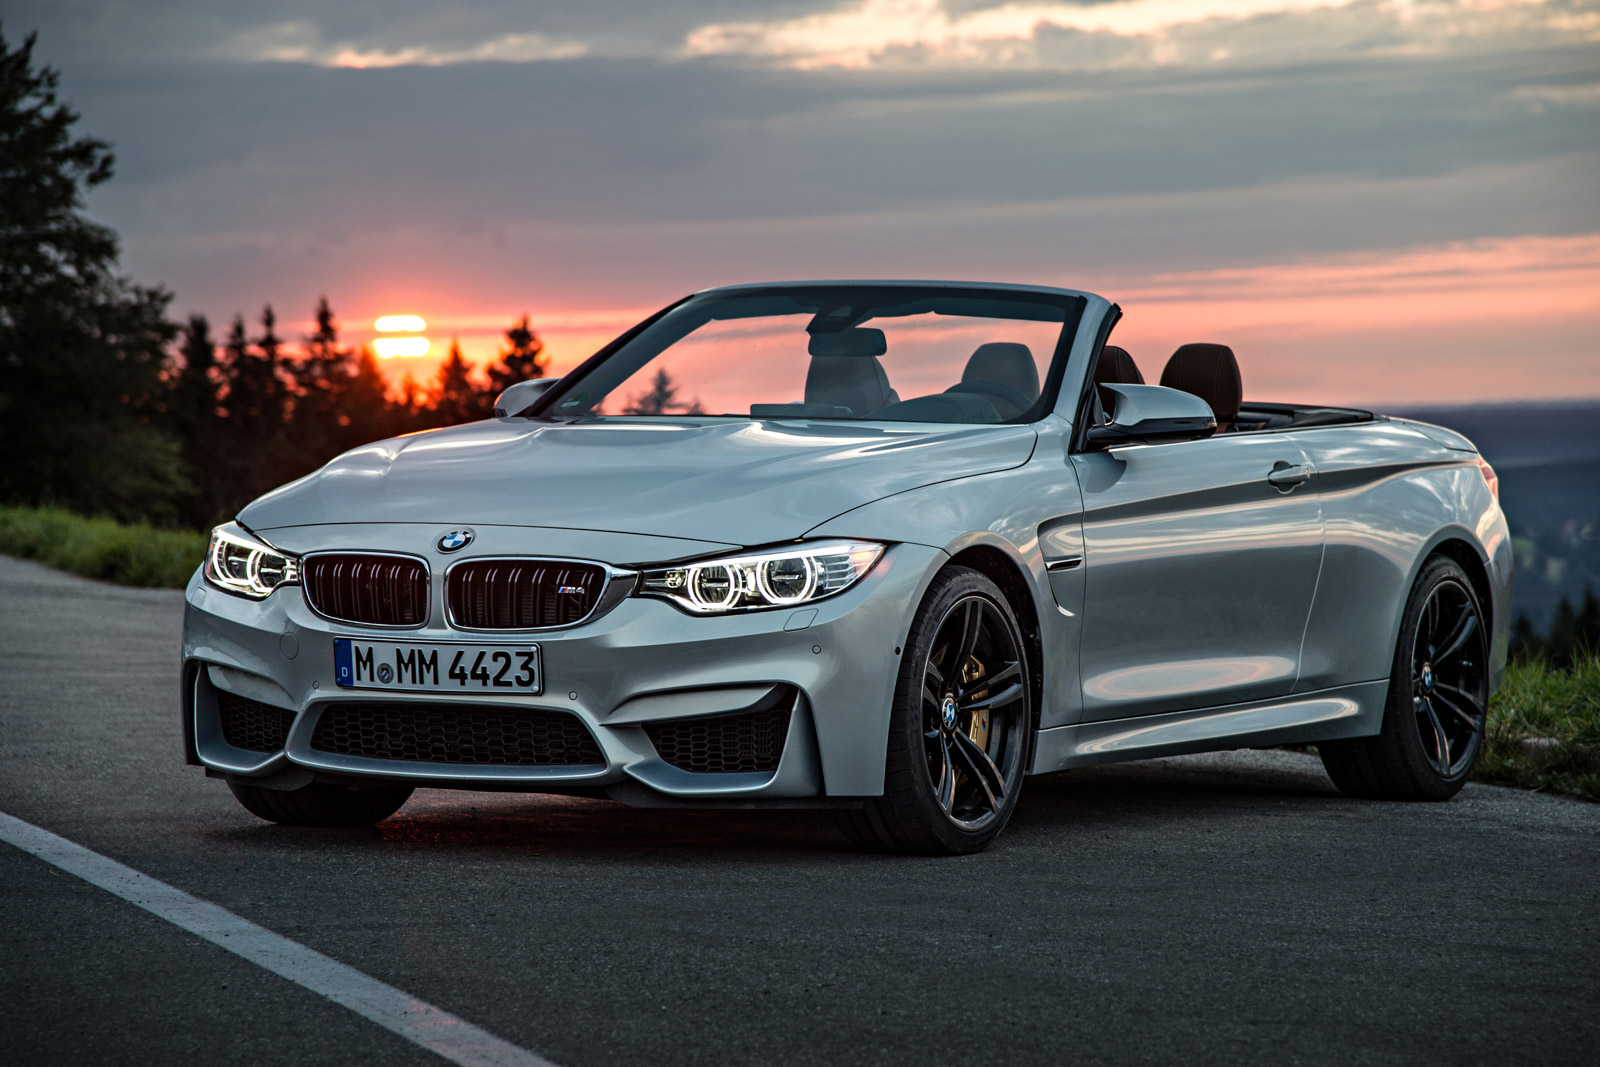 Why BMW is One of the Most Creative Auto Brands (In Five Cars)